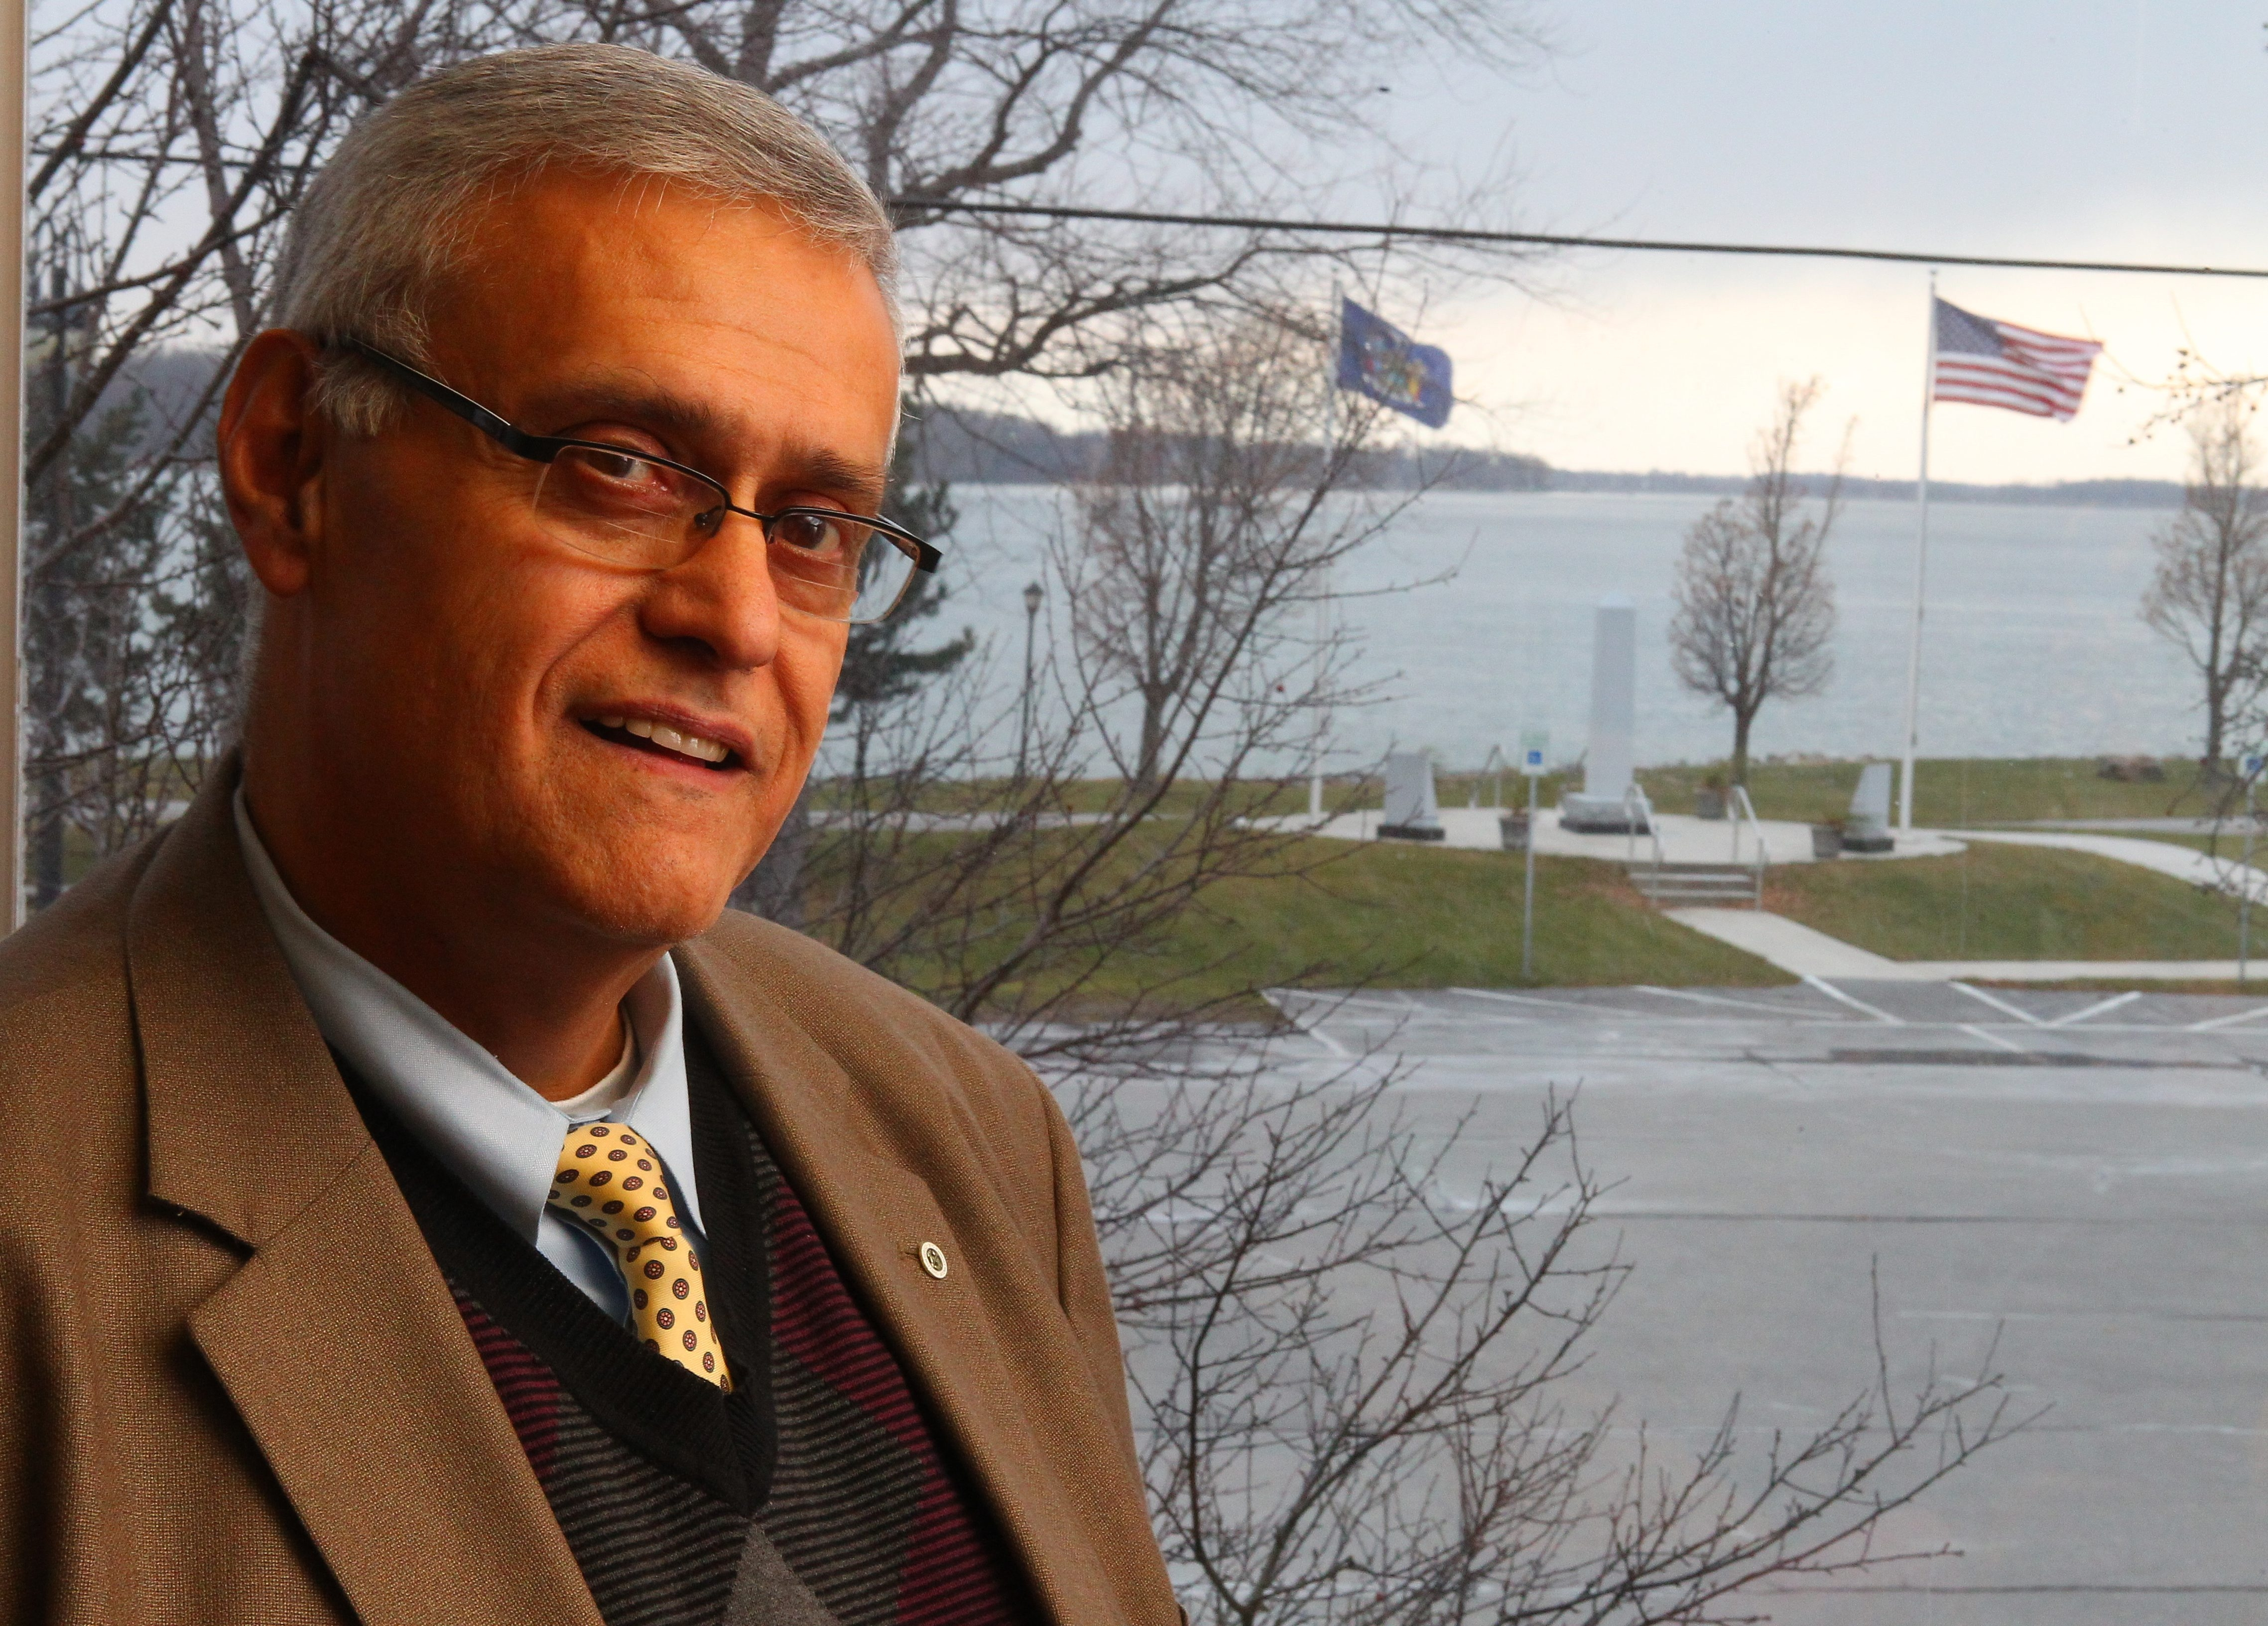 Outgoing City of Tonawanda Mayor Ron Pilozzi is proud of his accomplishments during two terms, including All-Heroes Memorial behind City Hall and the Niawanda Park Pavilion, built with Greenway funds.